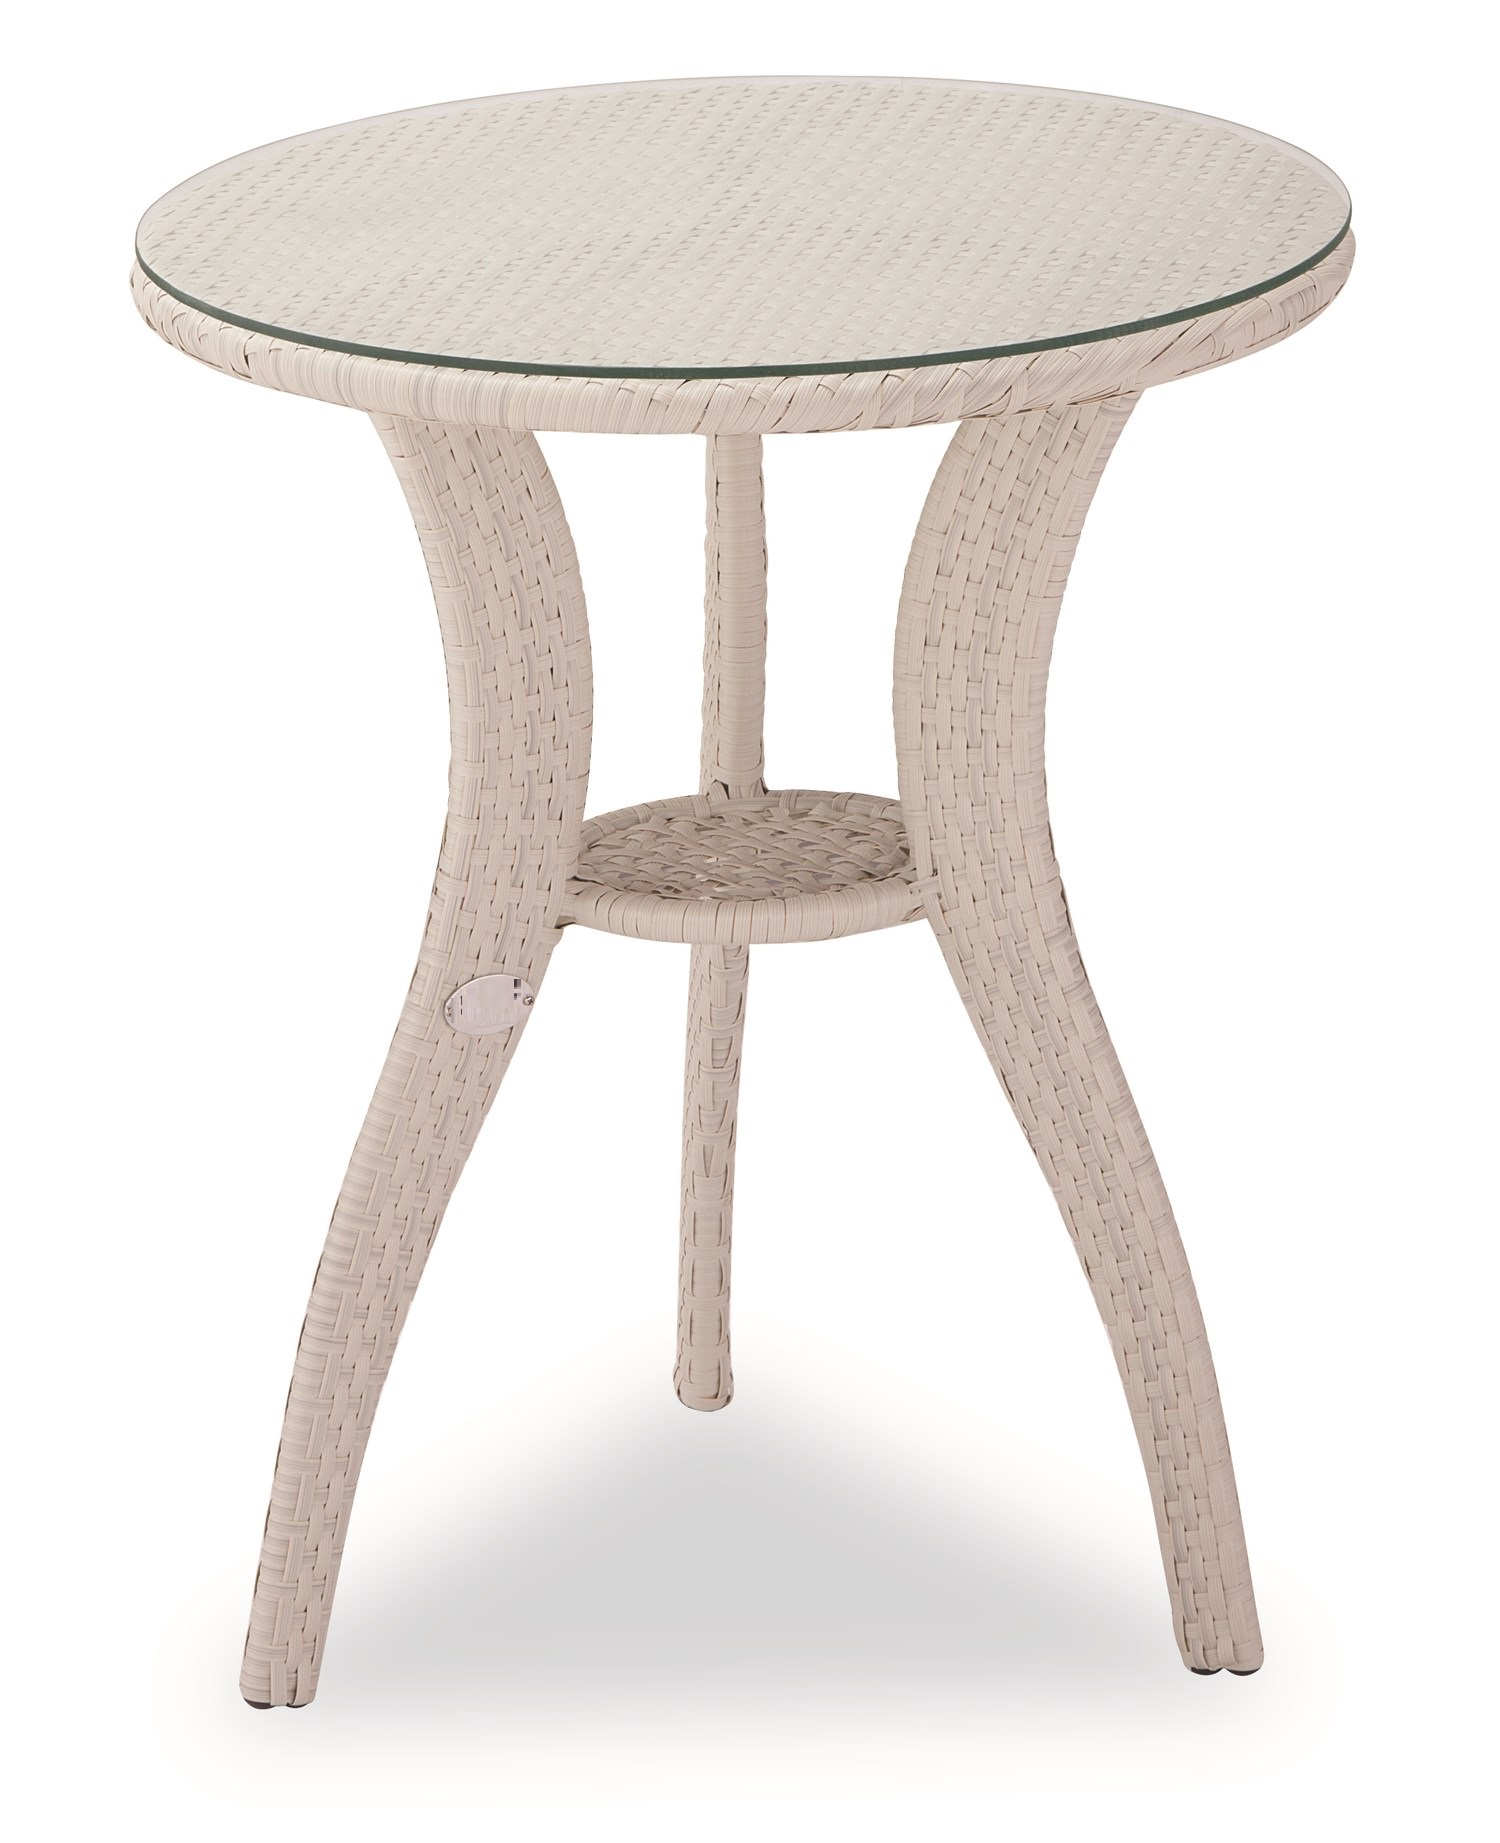 STT AR037 70 Rattan Coffee Table Round D70 Hotel Restaurant Cafe